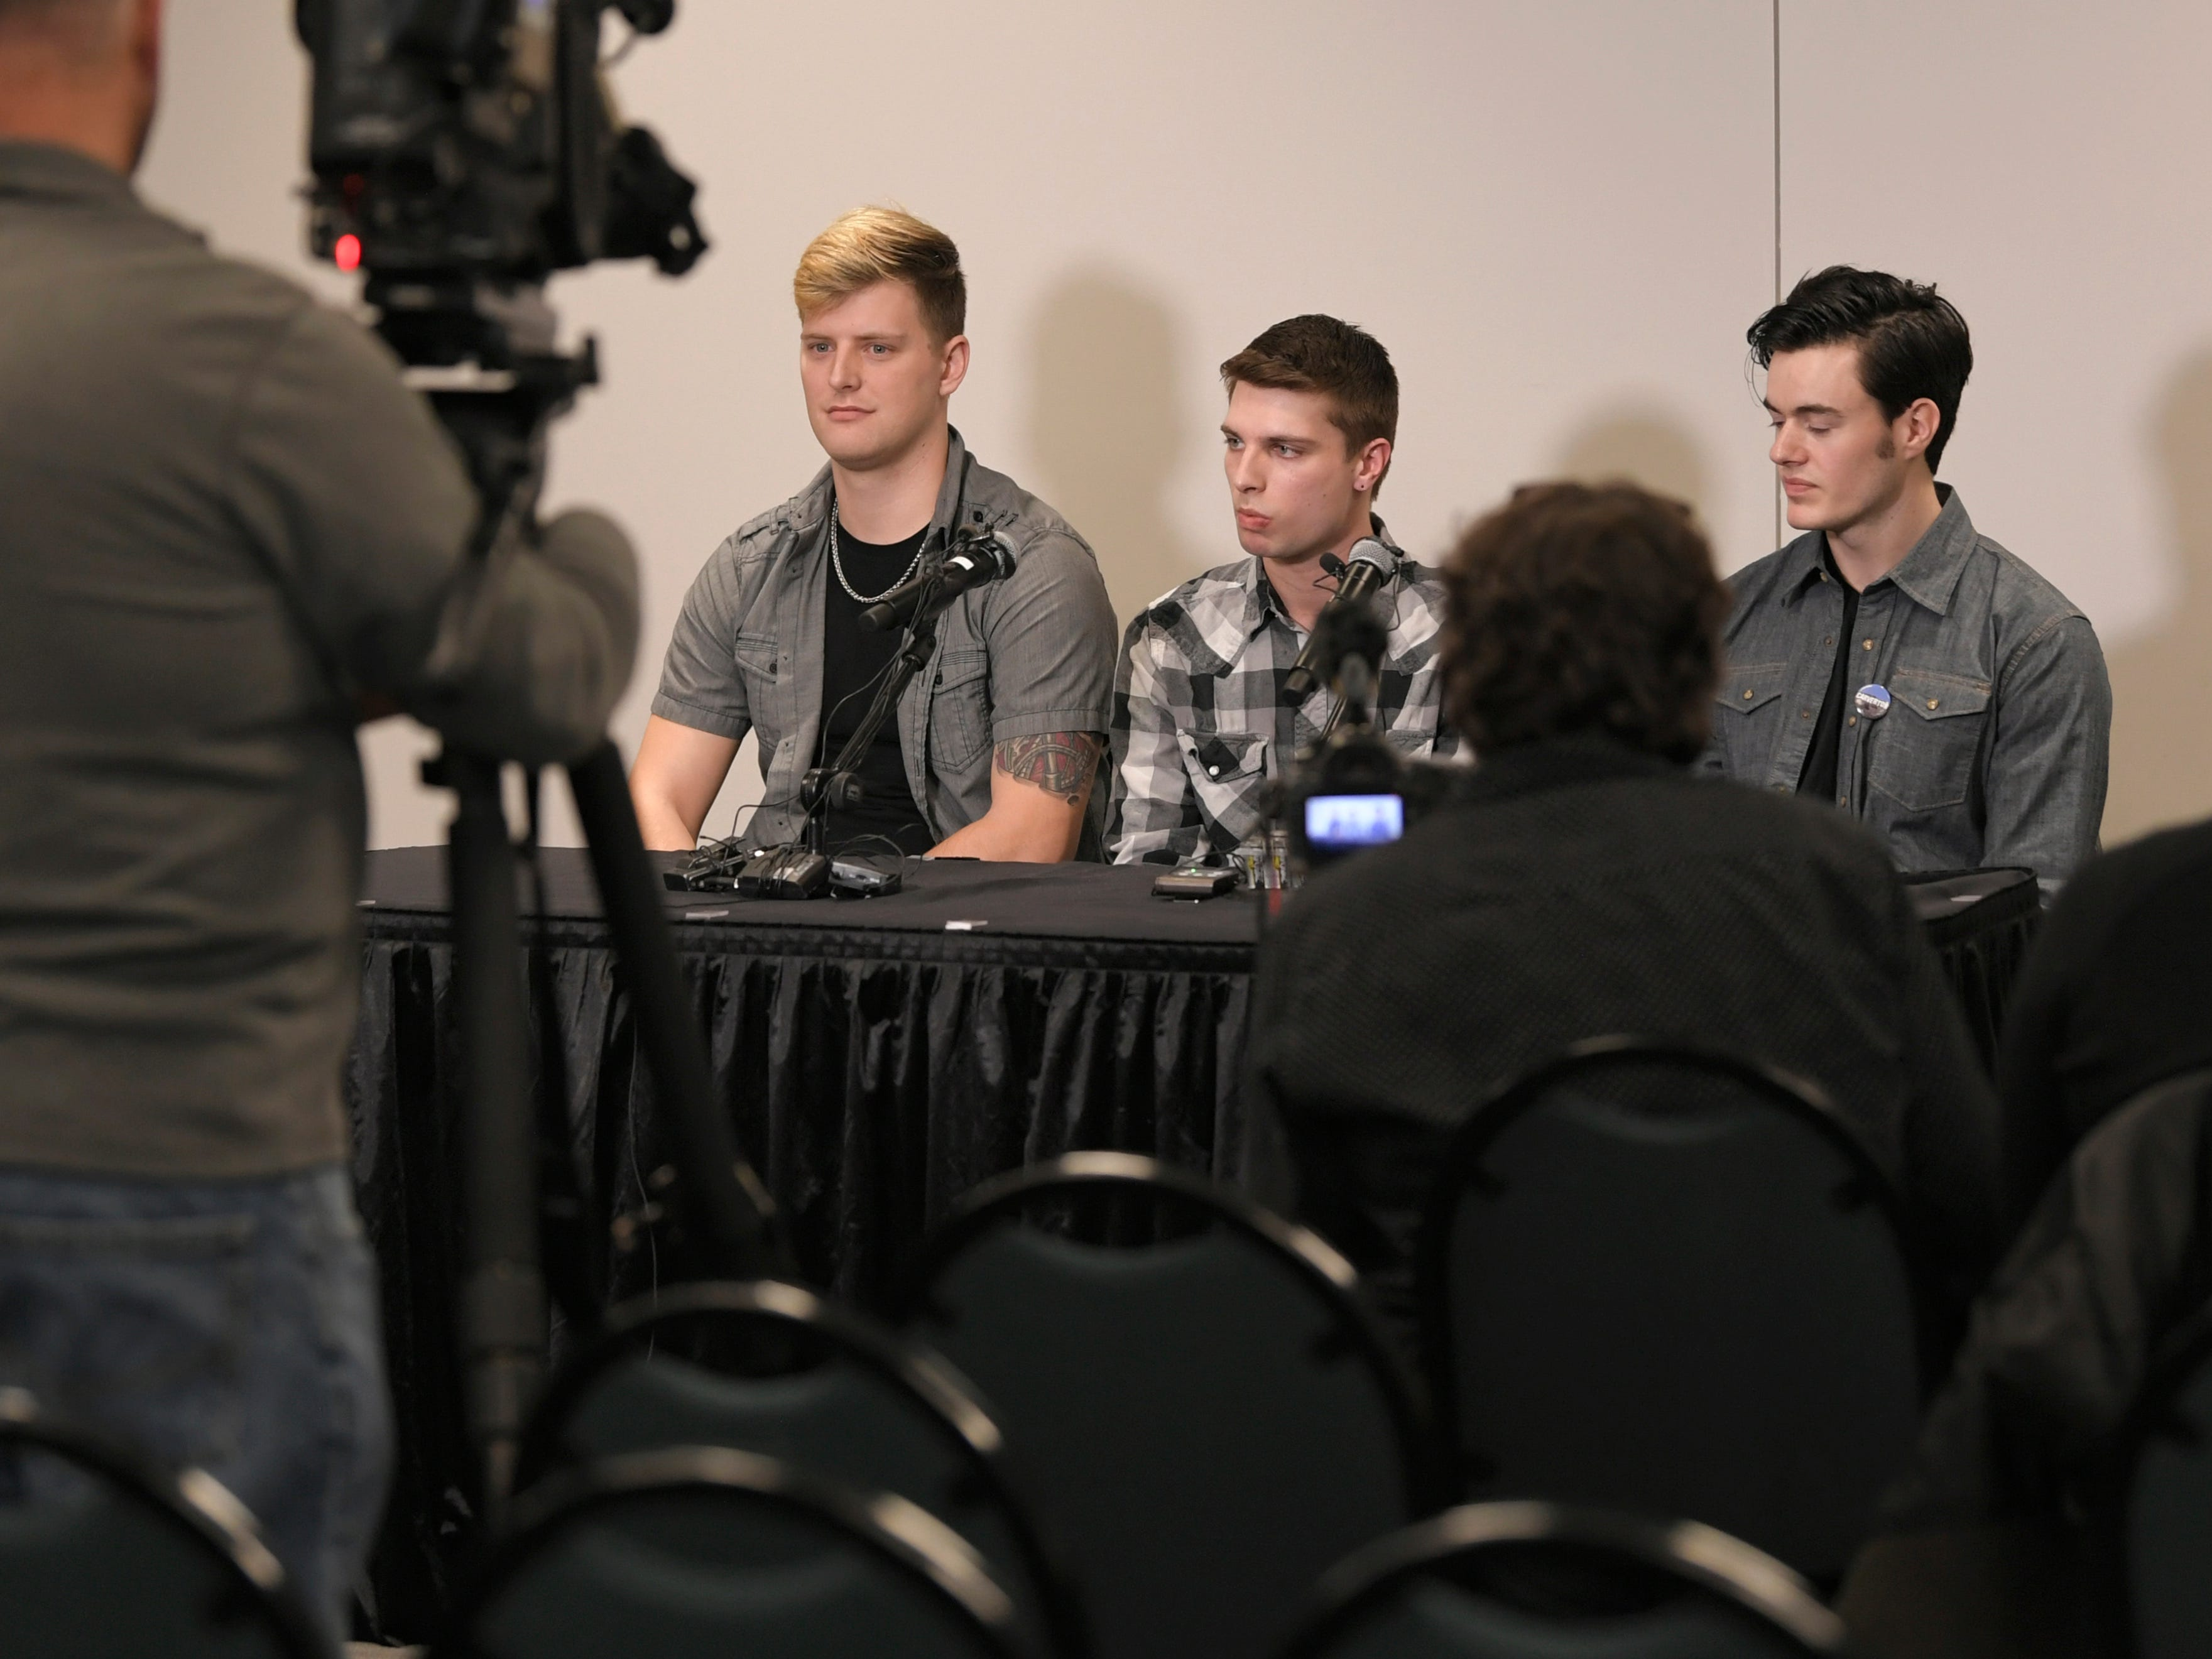 Carverton band members, from left, Michael Wiebell, Michael Curry and Christian Ferguson, speak to the media about fellow member Kyle Yorlets during a press conference at Belmont University on Monday, Feb. 11, 2019. Police have charged five juveniles in the case. A memorial service was scheduled to follow.